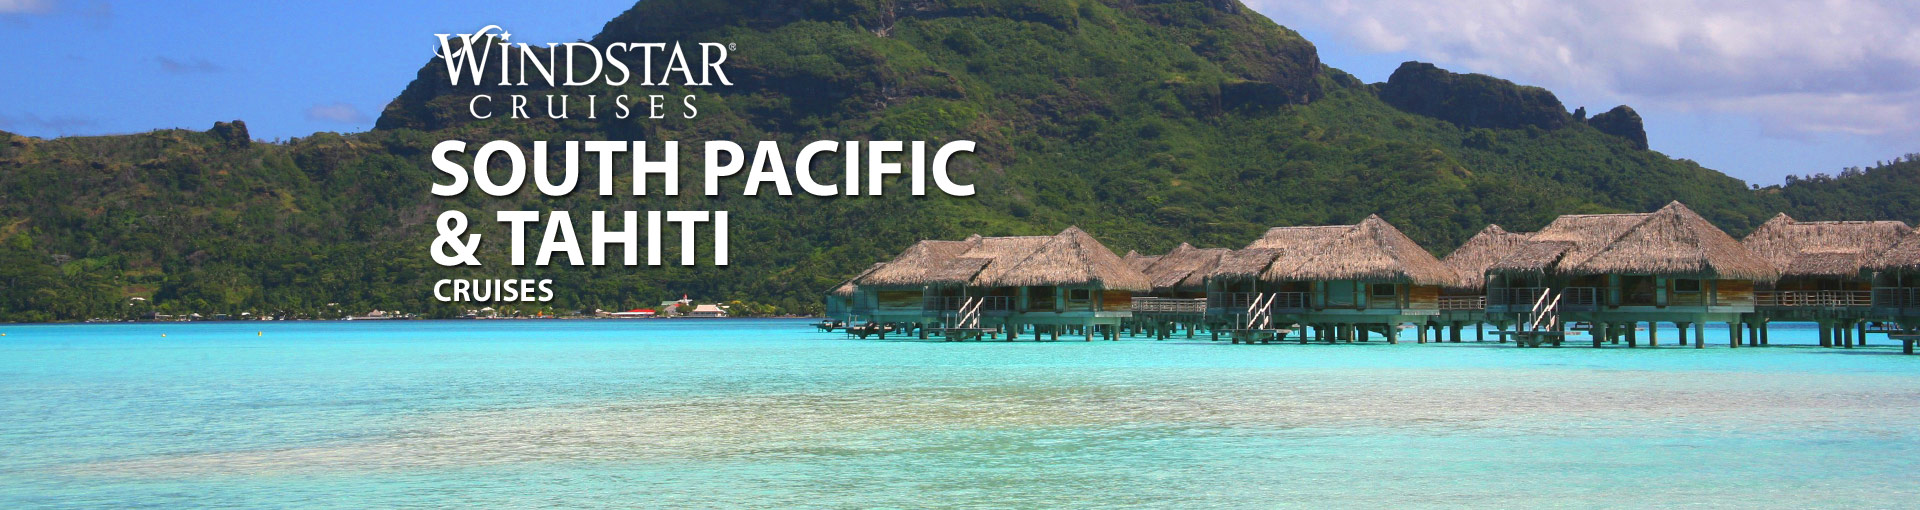 Windstar South Pacific & Tahiti Cruises